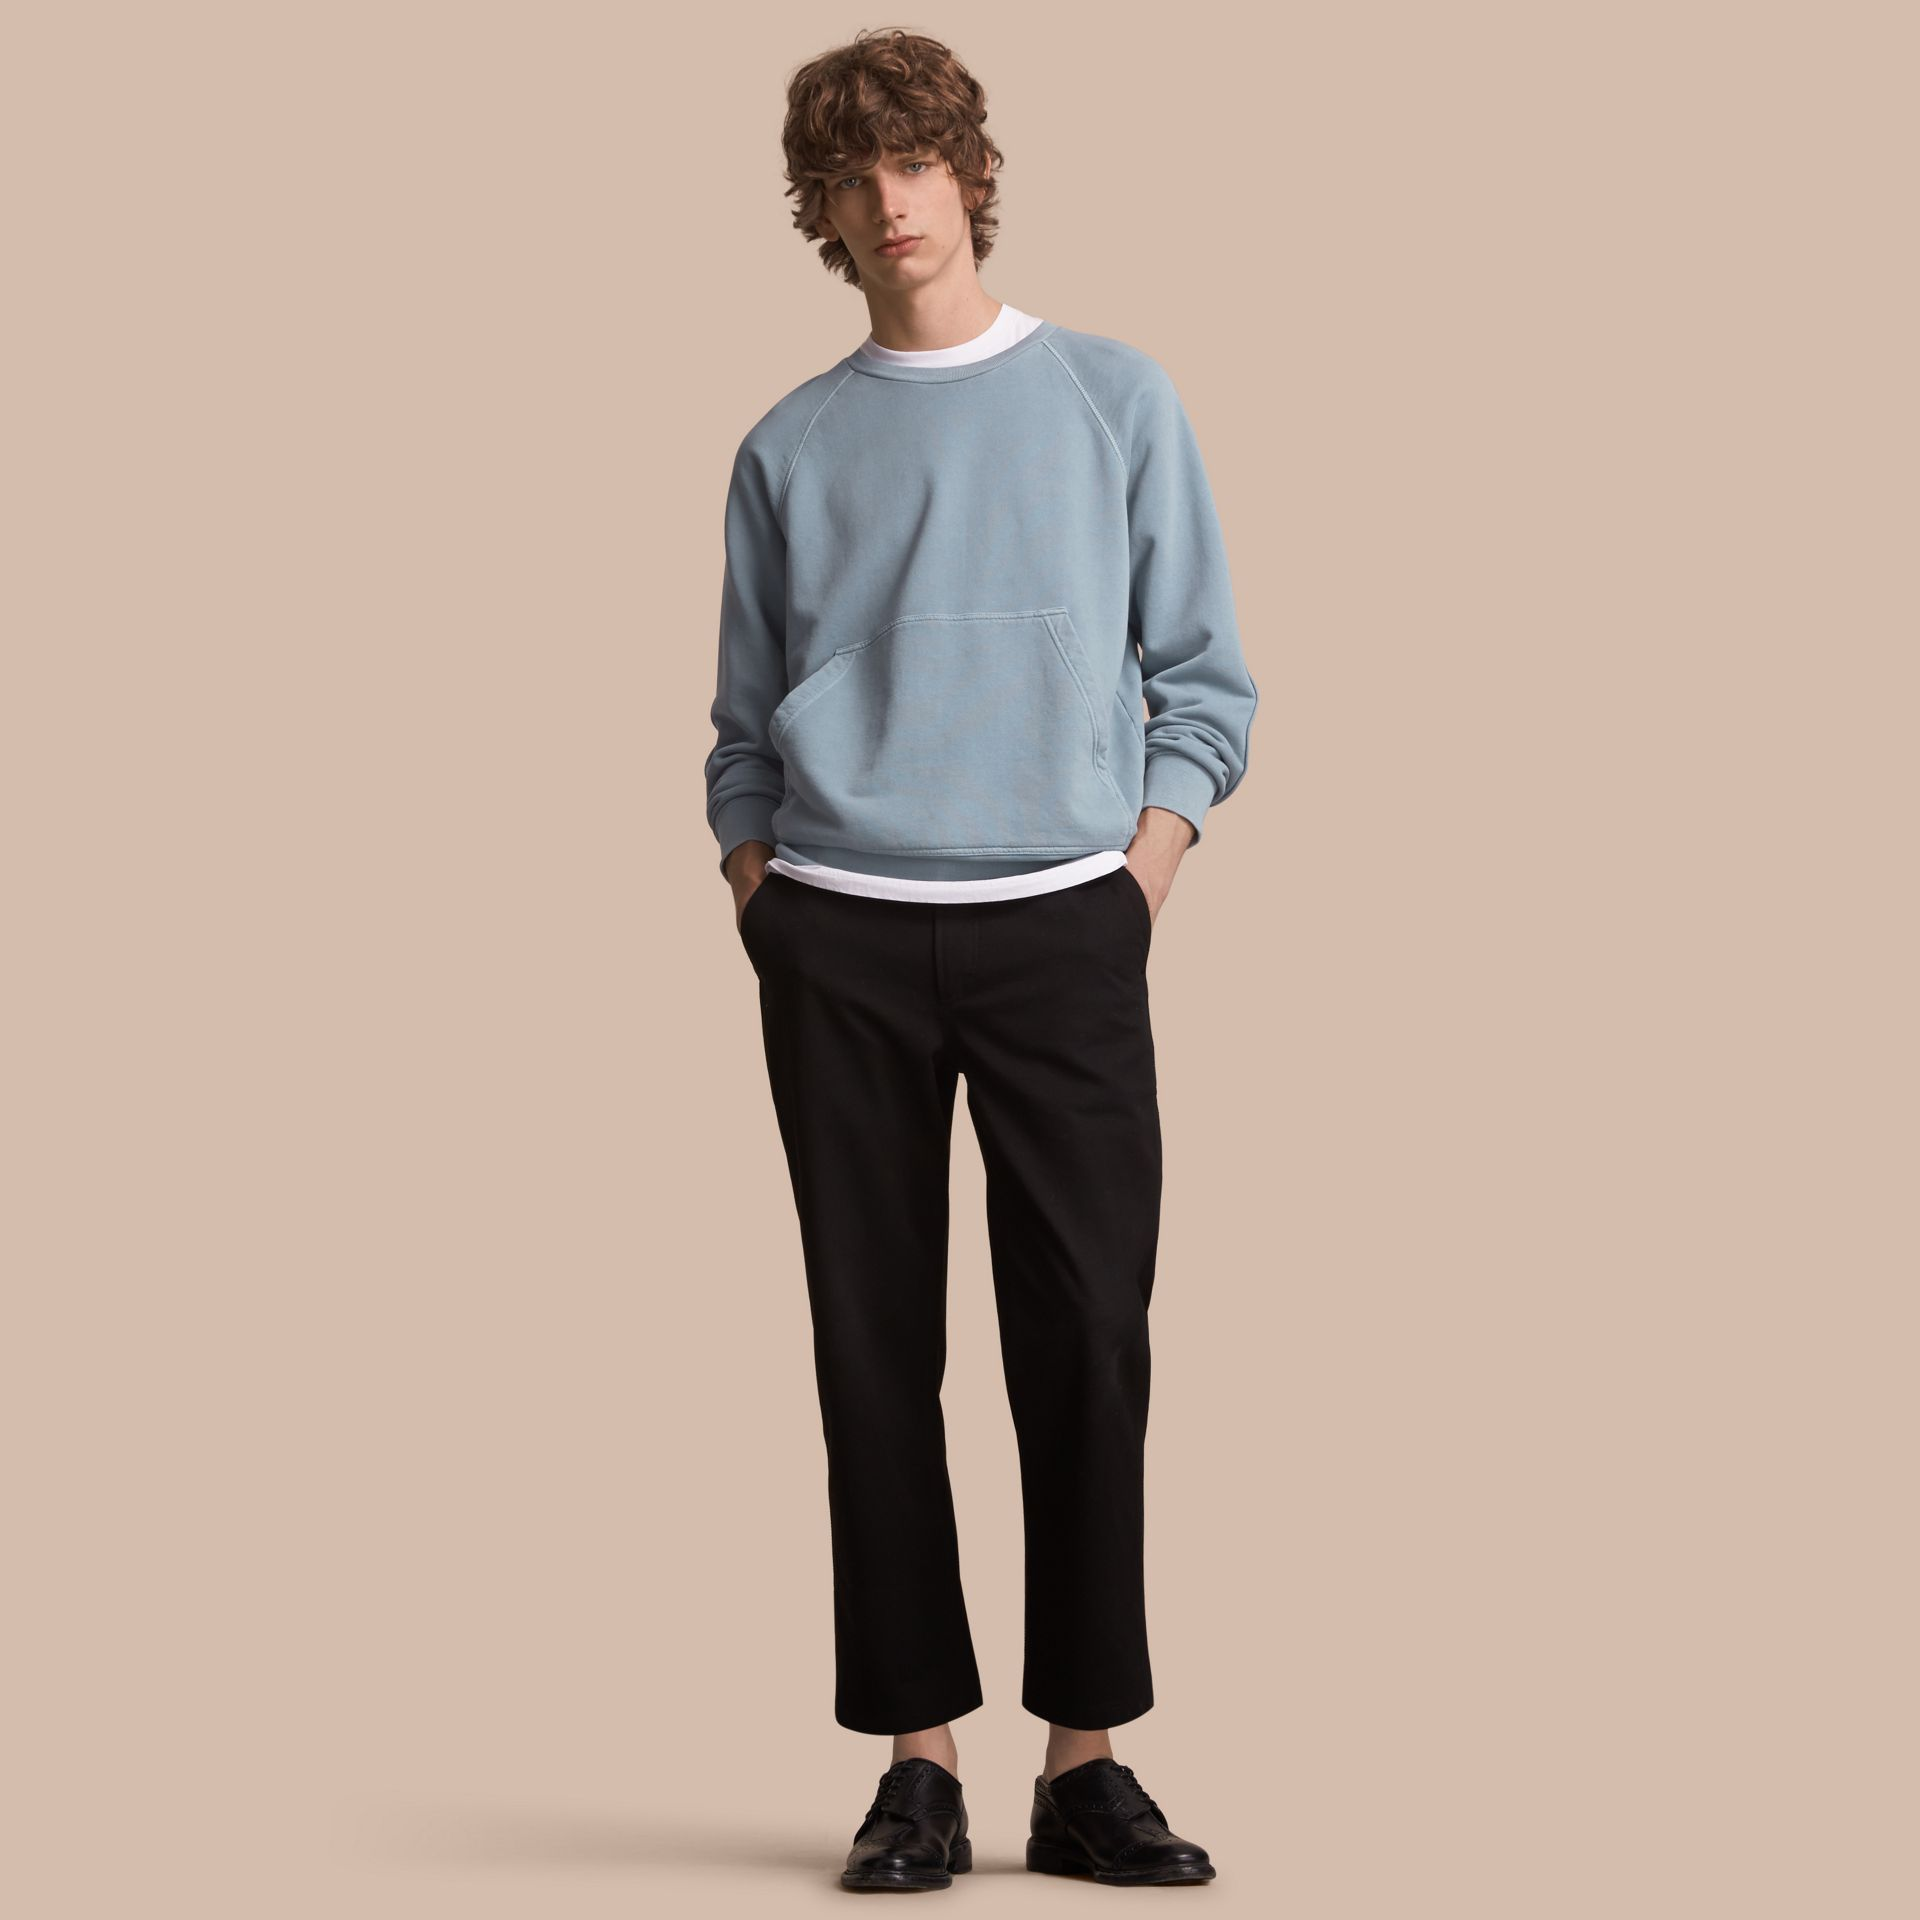 Unisex Pigment-dyed Cotton Oversize Sweatshirt in Dusty Blue - Men | Burberry - gallery image 1